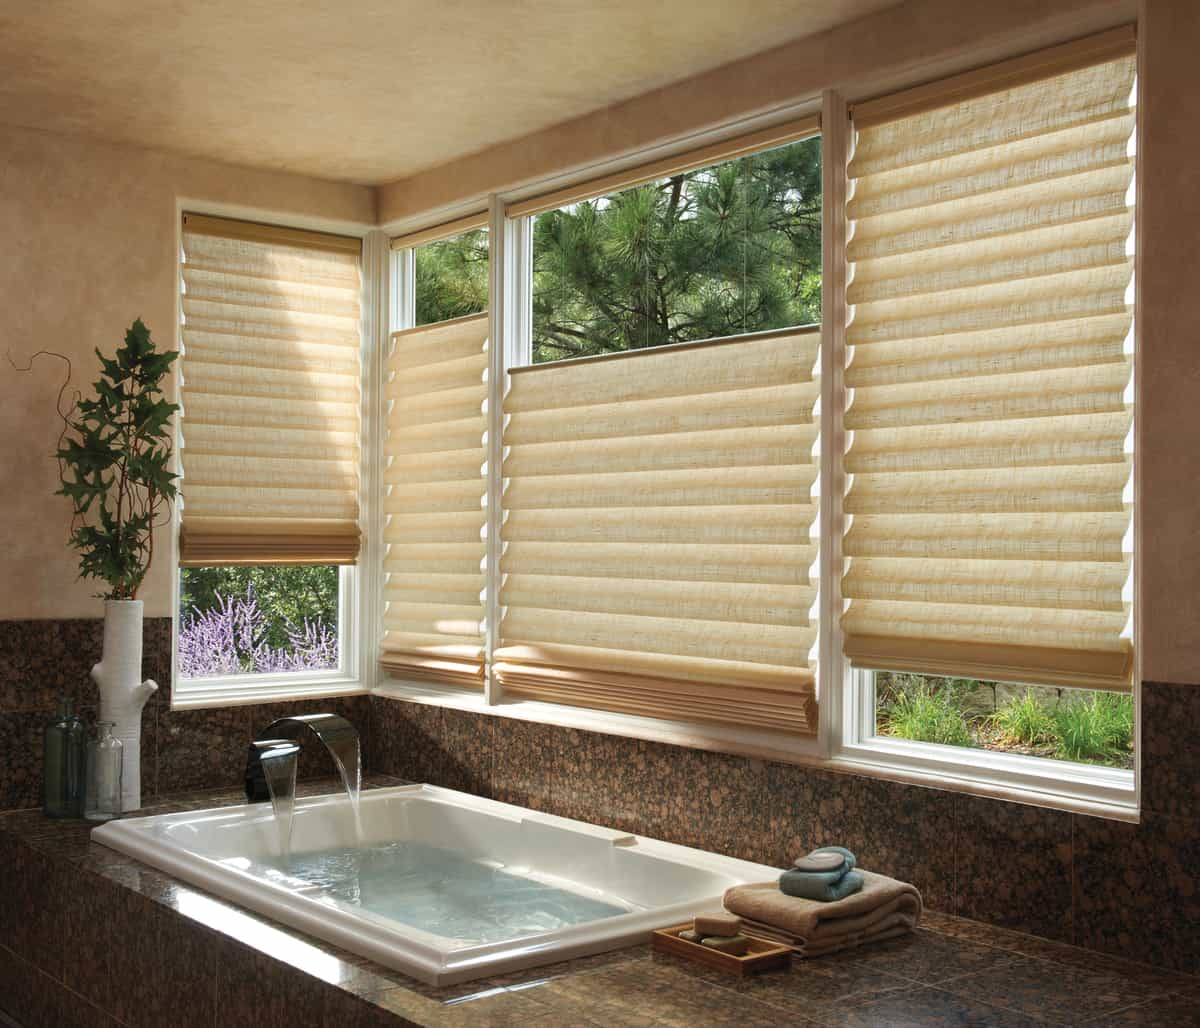 How to Style Windows with Roman Shades for Homes in Southlake, Texas (TX) like Custom Vignette.